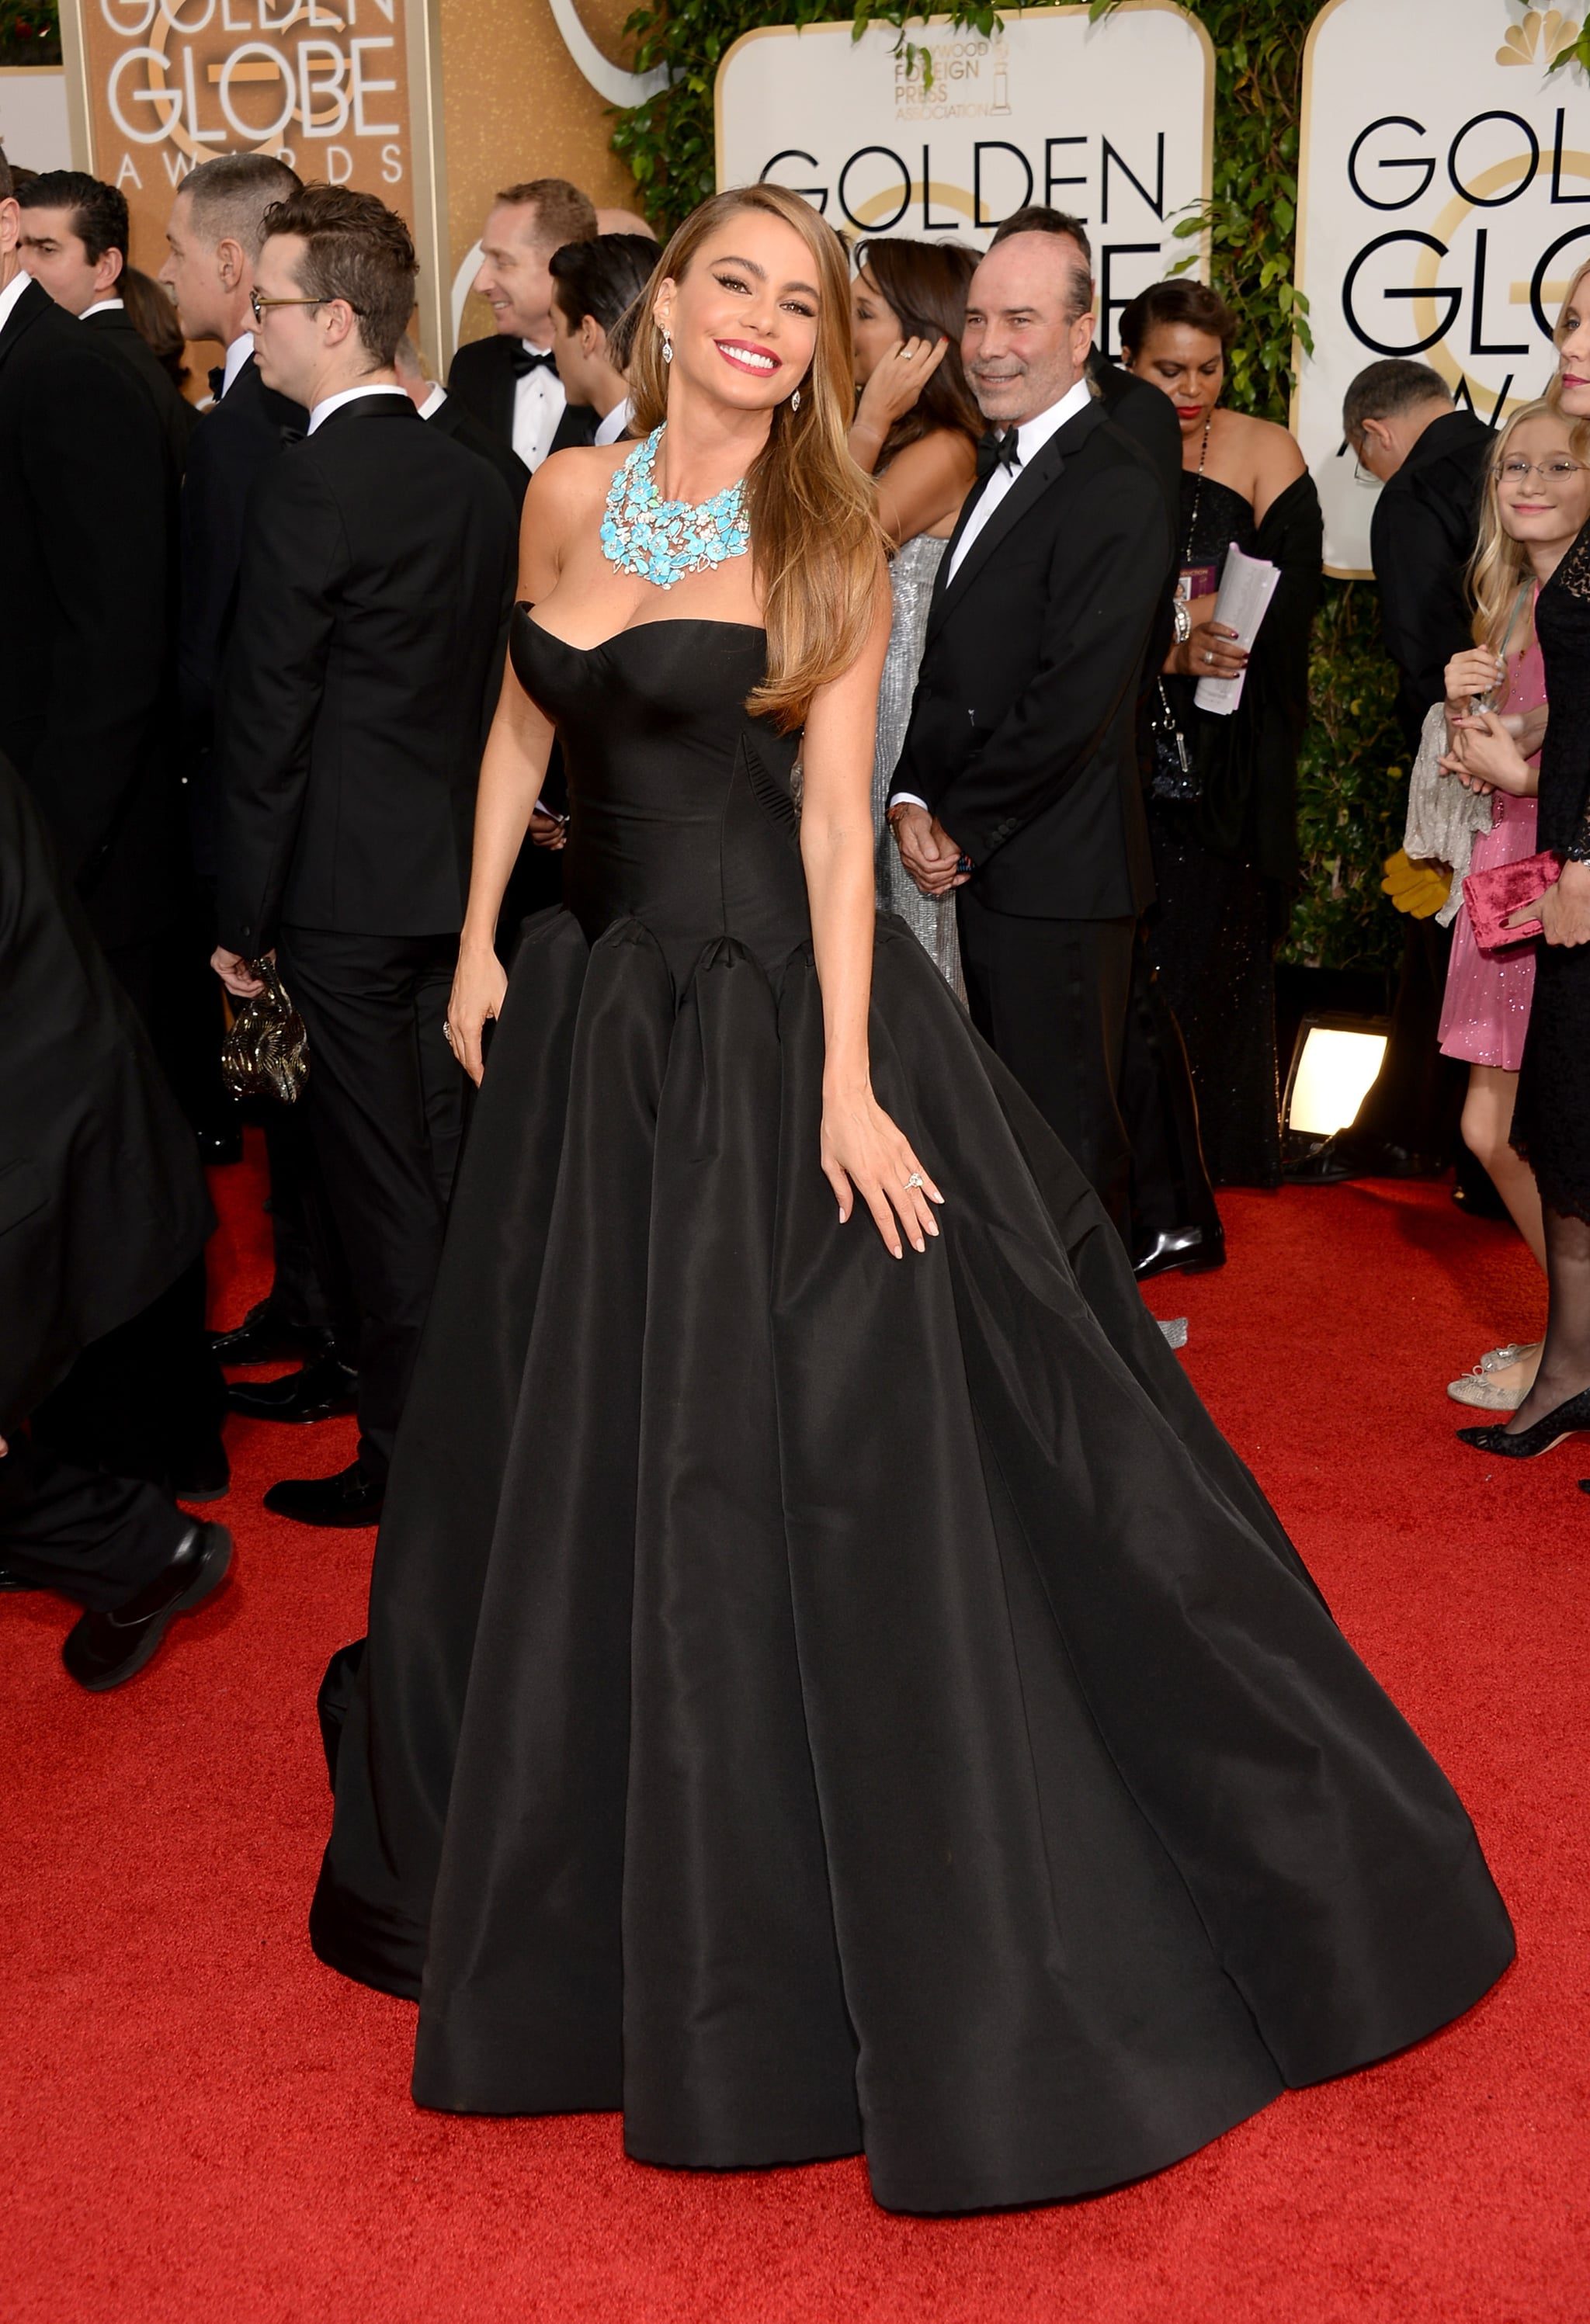 Sofia Vergara in Zac Posen